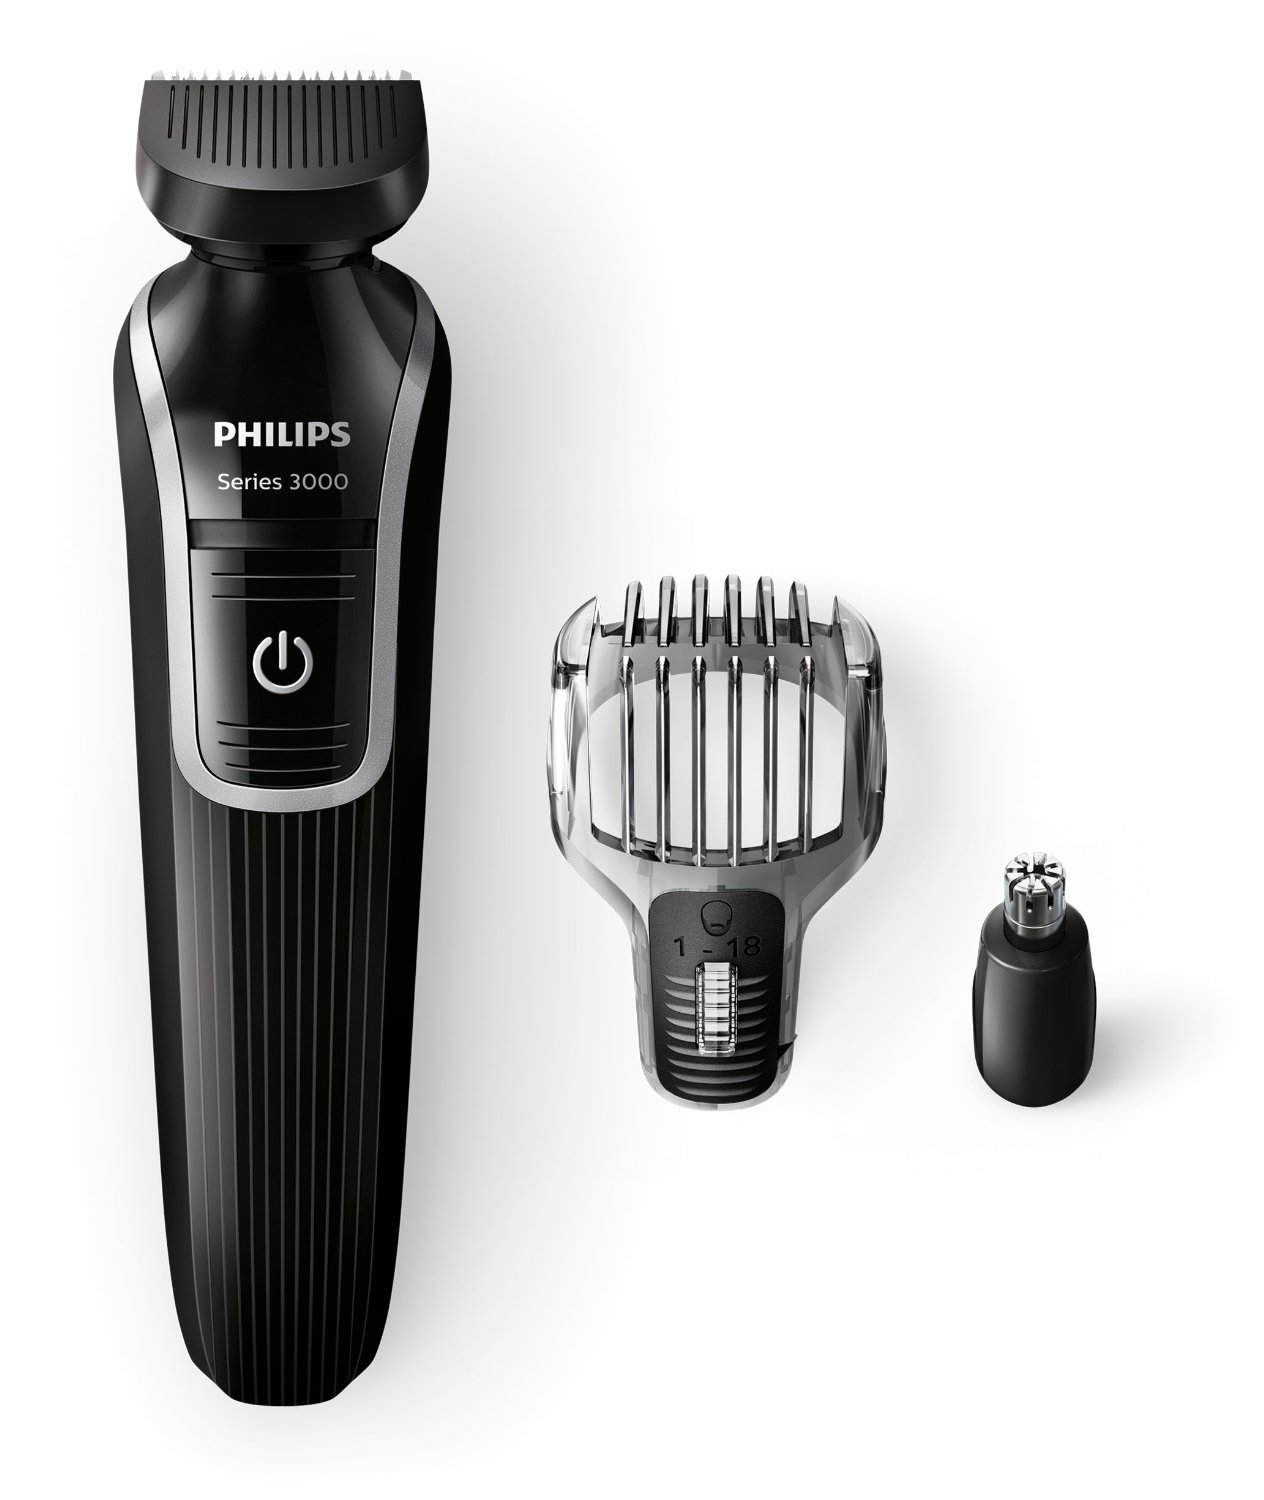 Philips QG3320/15 Trimmer Review